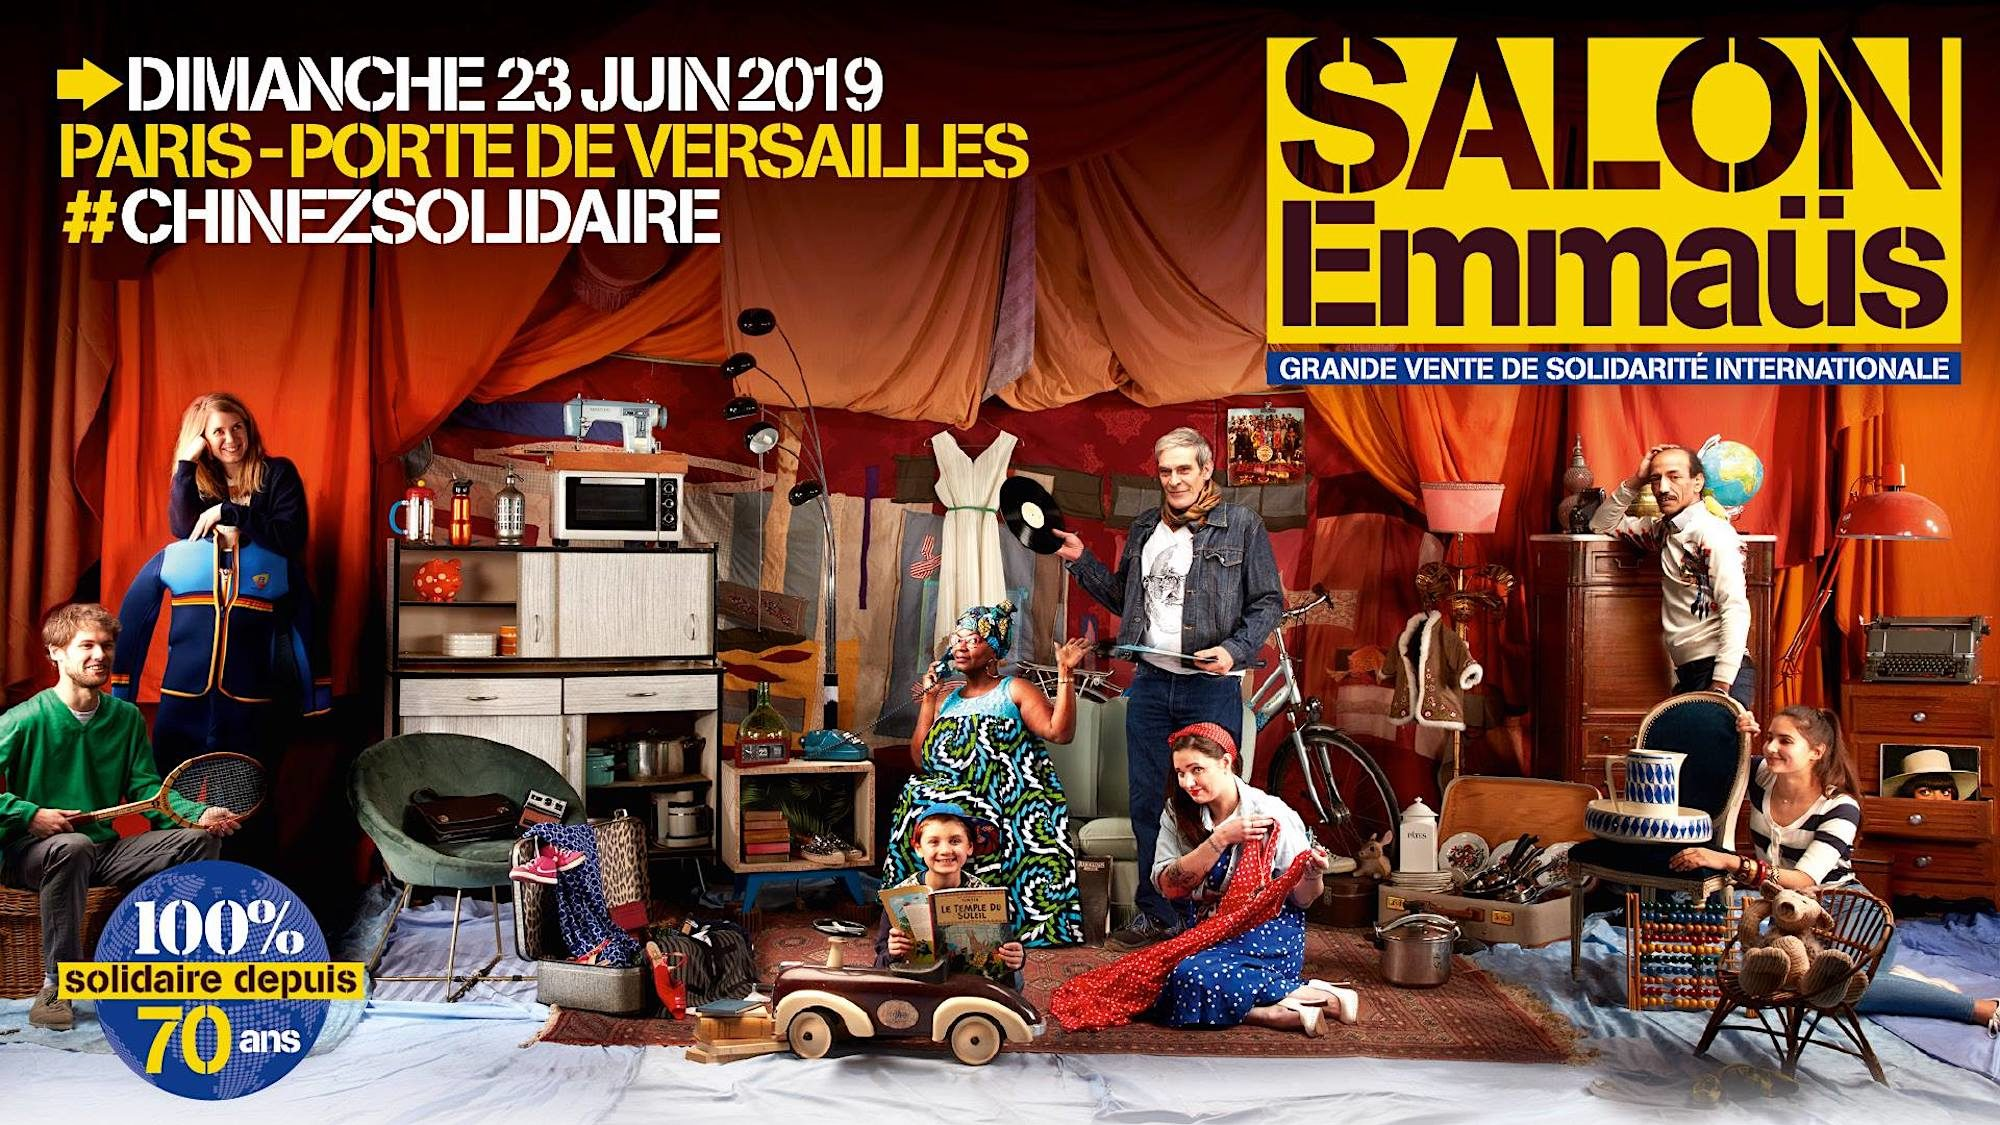 The Grande Vente Solidaire Emmaüs, a clothing, houseware and bric-à-brac sale takes place this month in Paris.